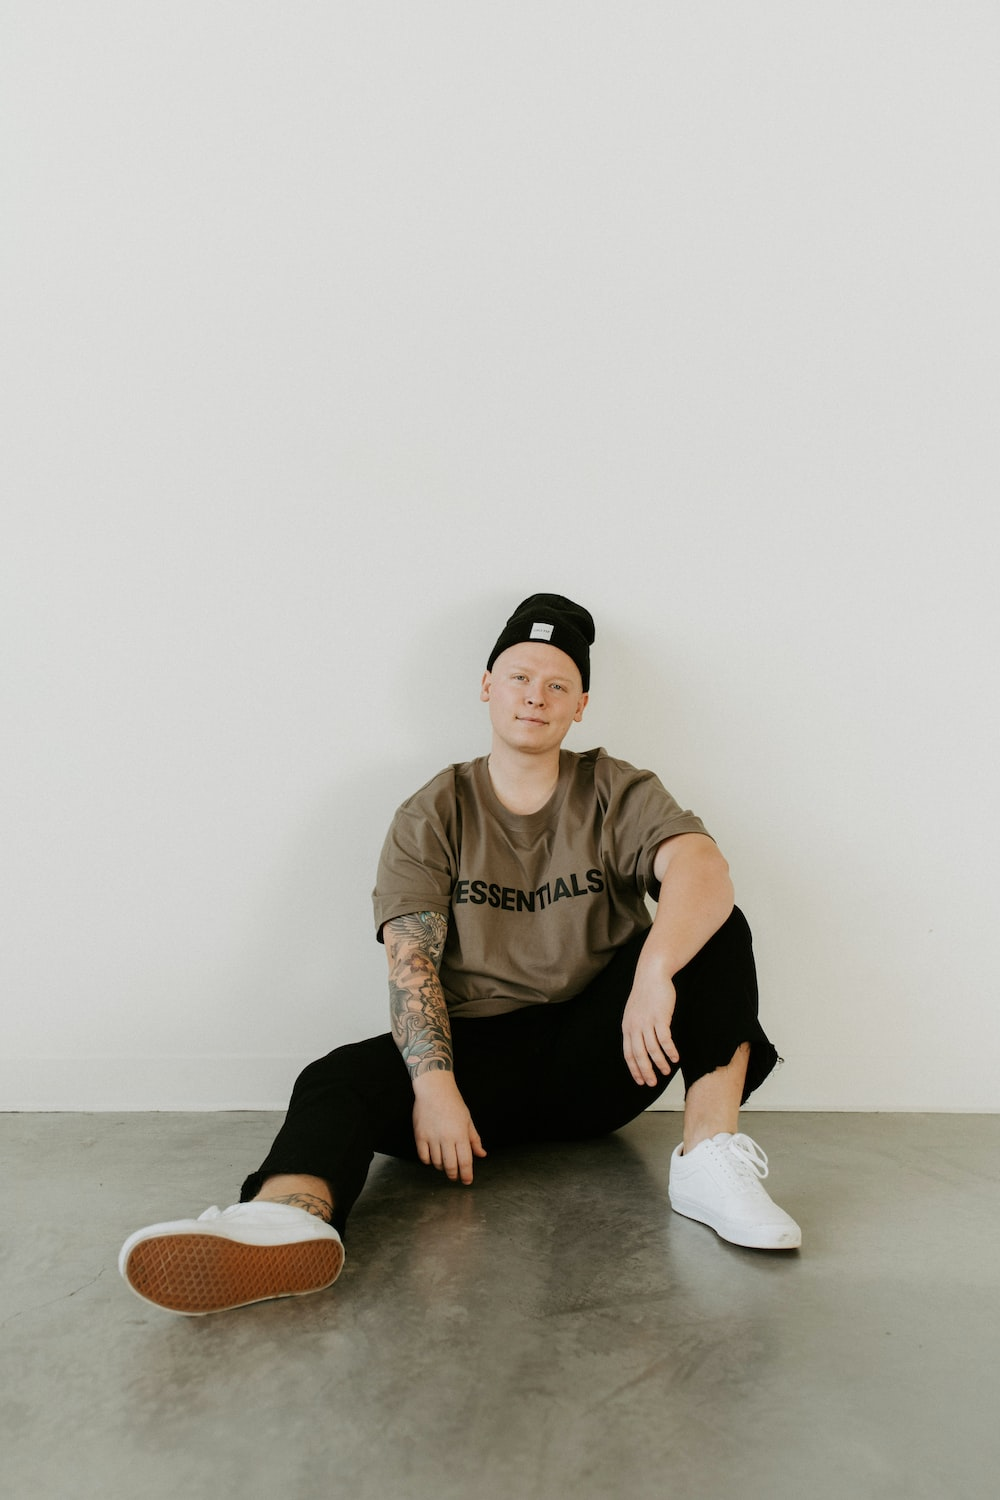 man in brown crew neck t-shirt and black pants sitting on floor